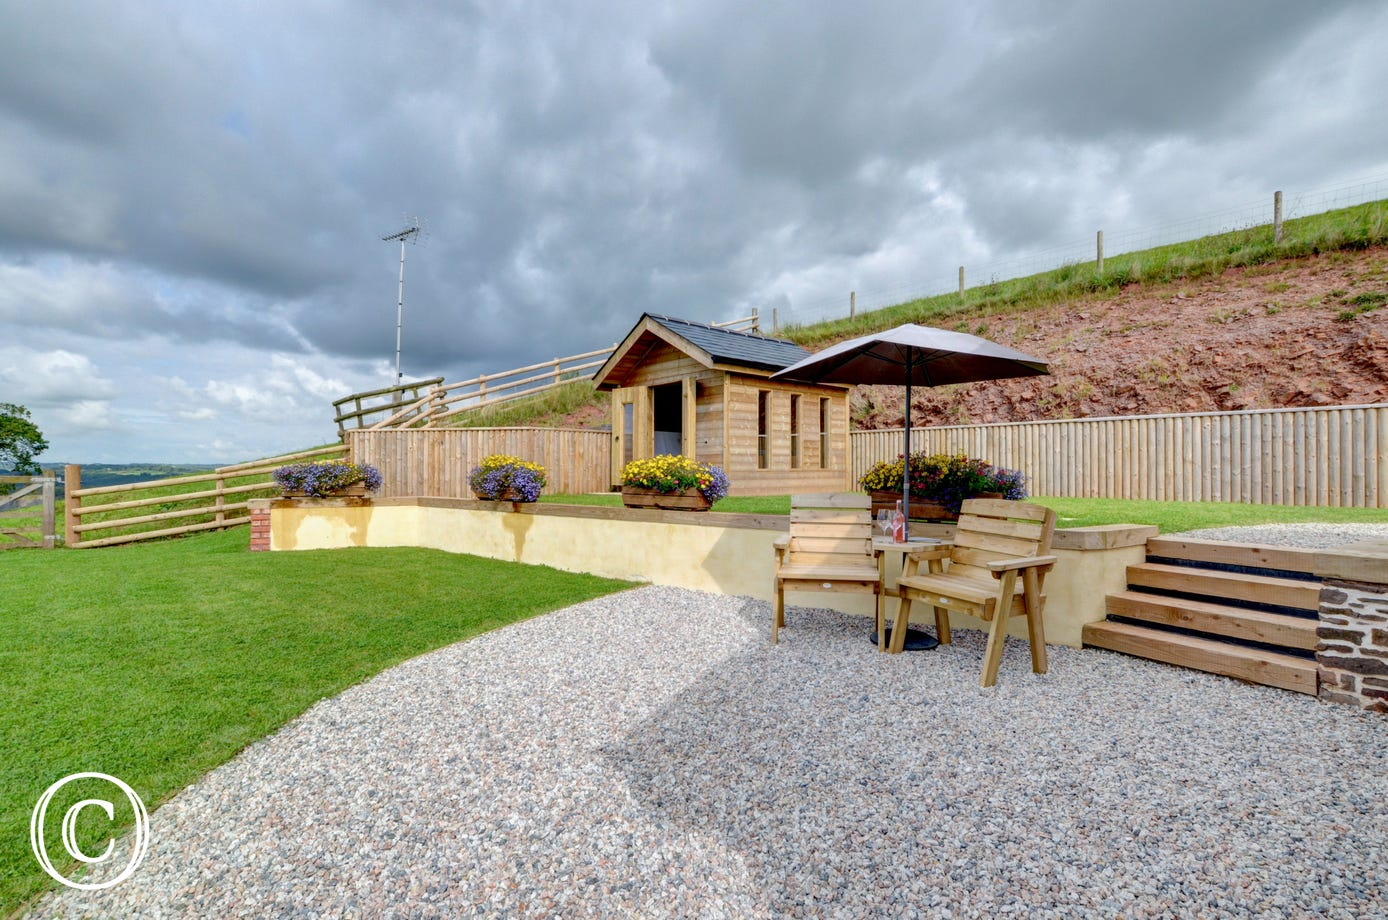 A external view of the patio and summerhouse with hot tub